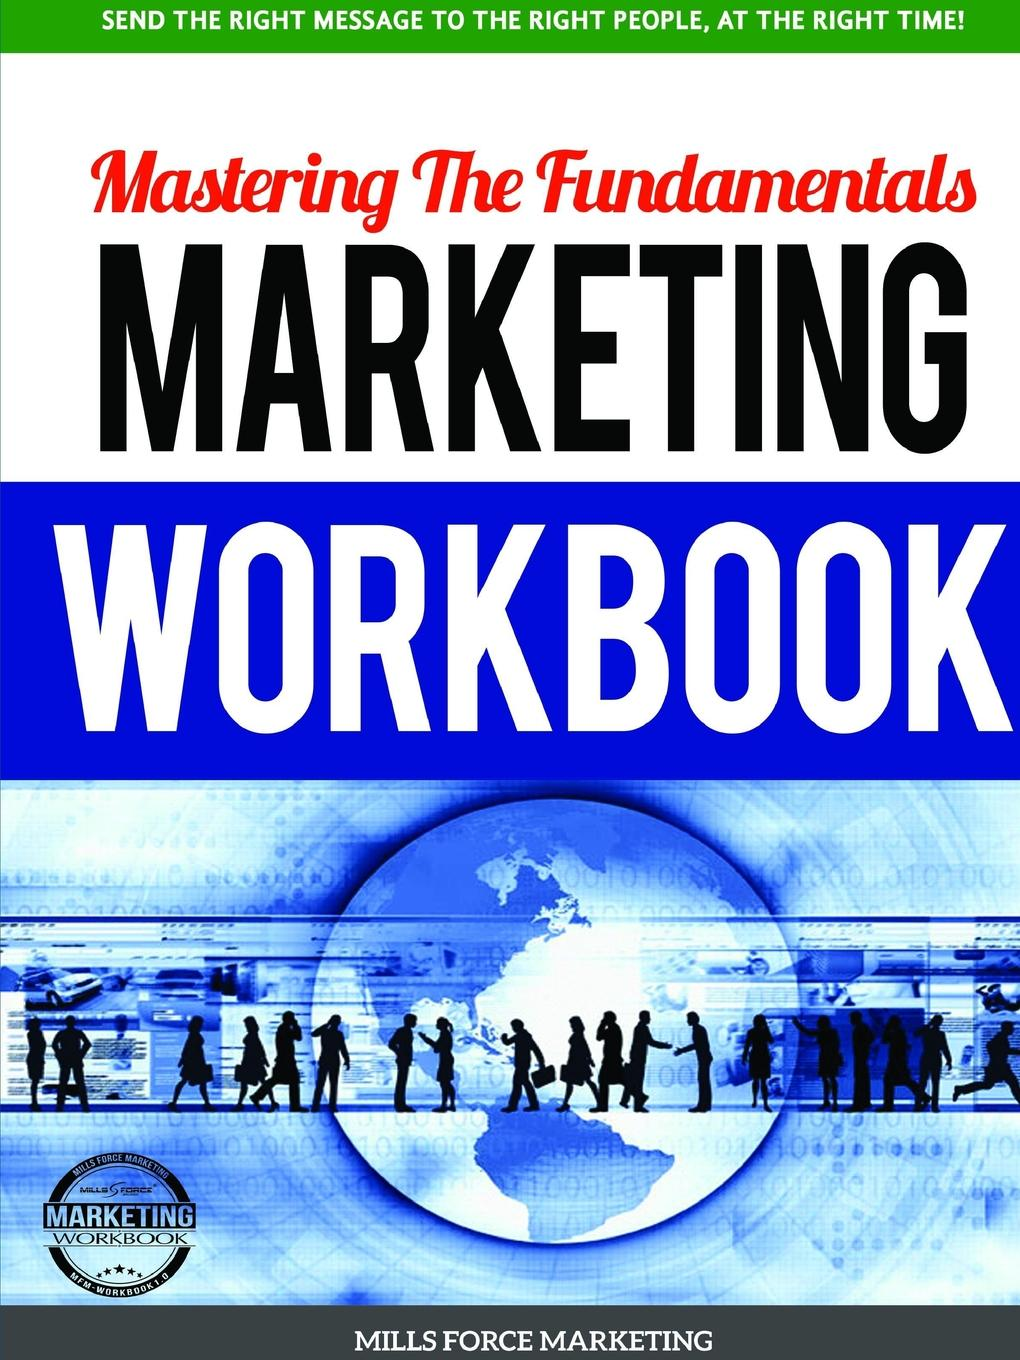 Mastering The Fundamentals Marketing Workbook If you are looking for ways to take you business to the next level...